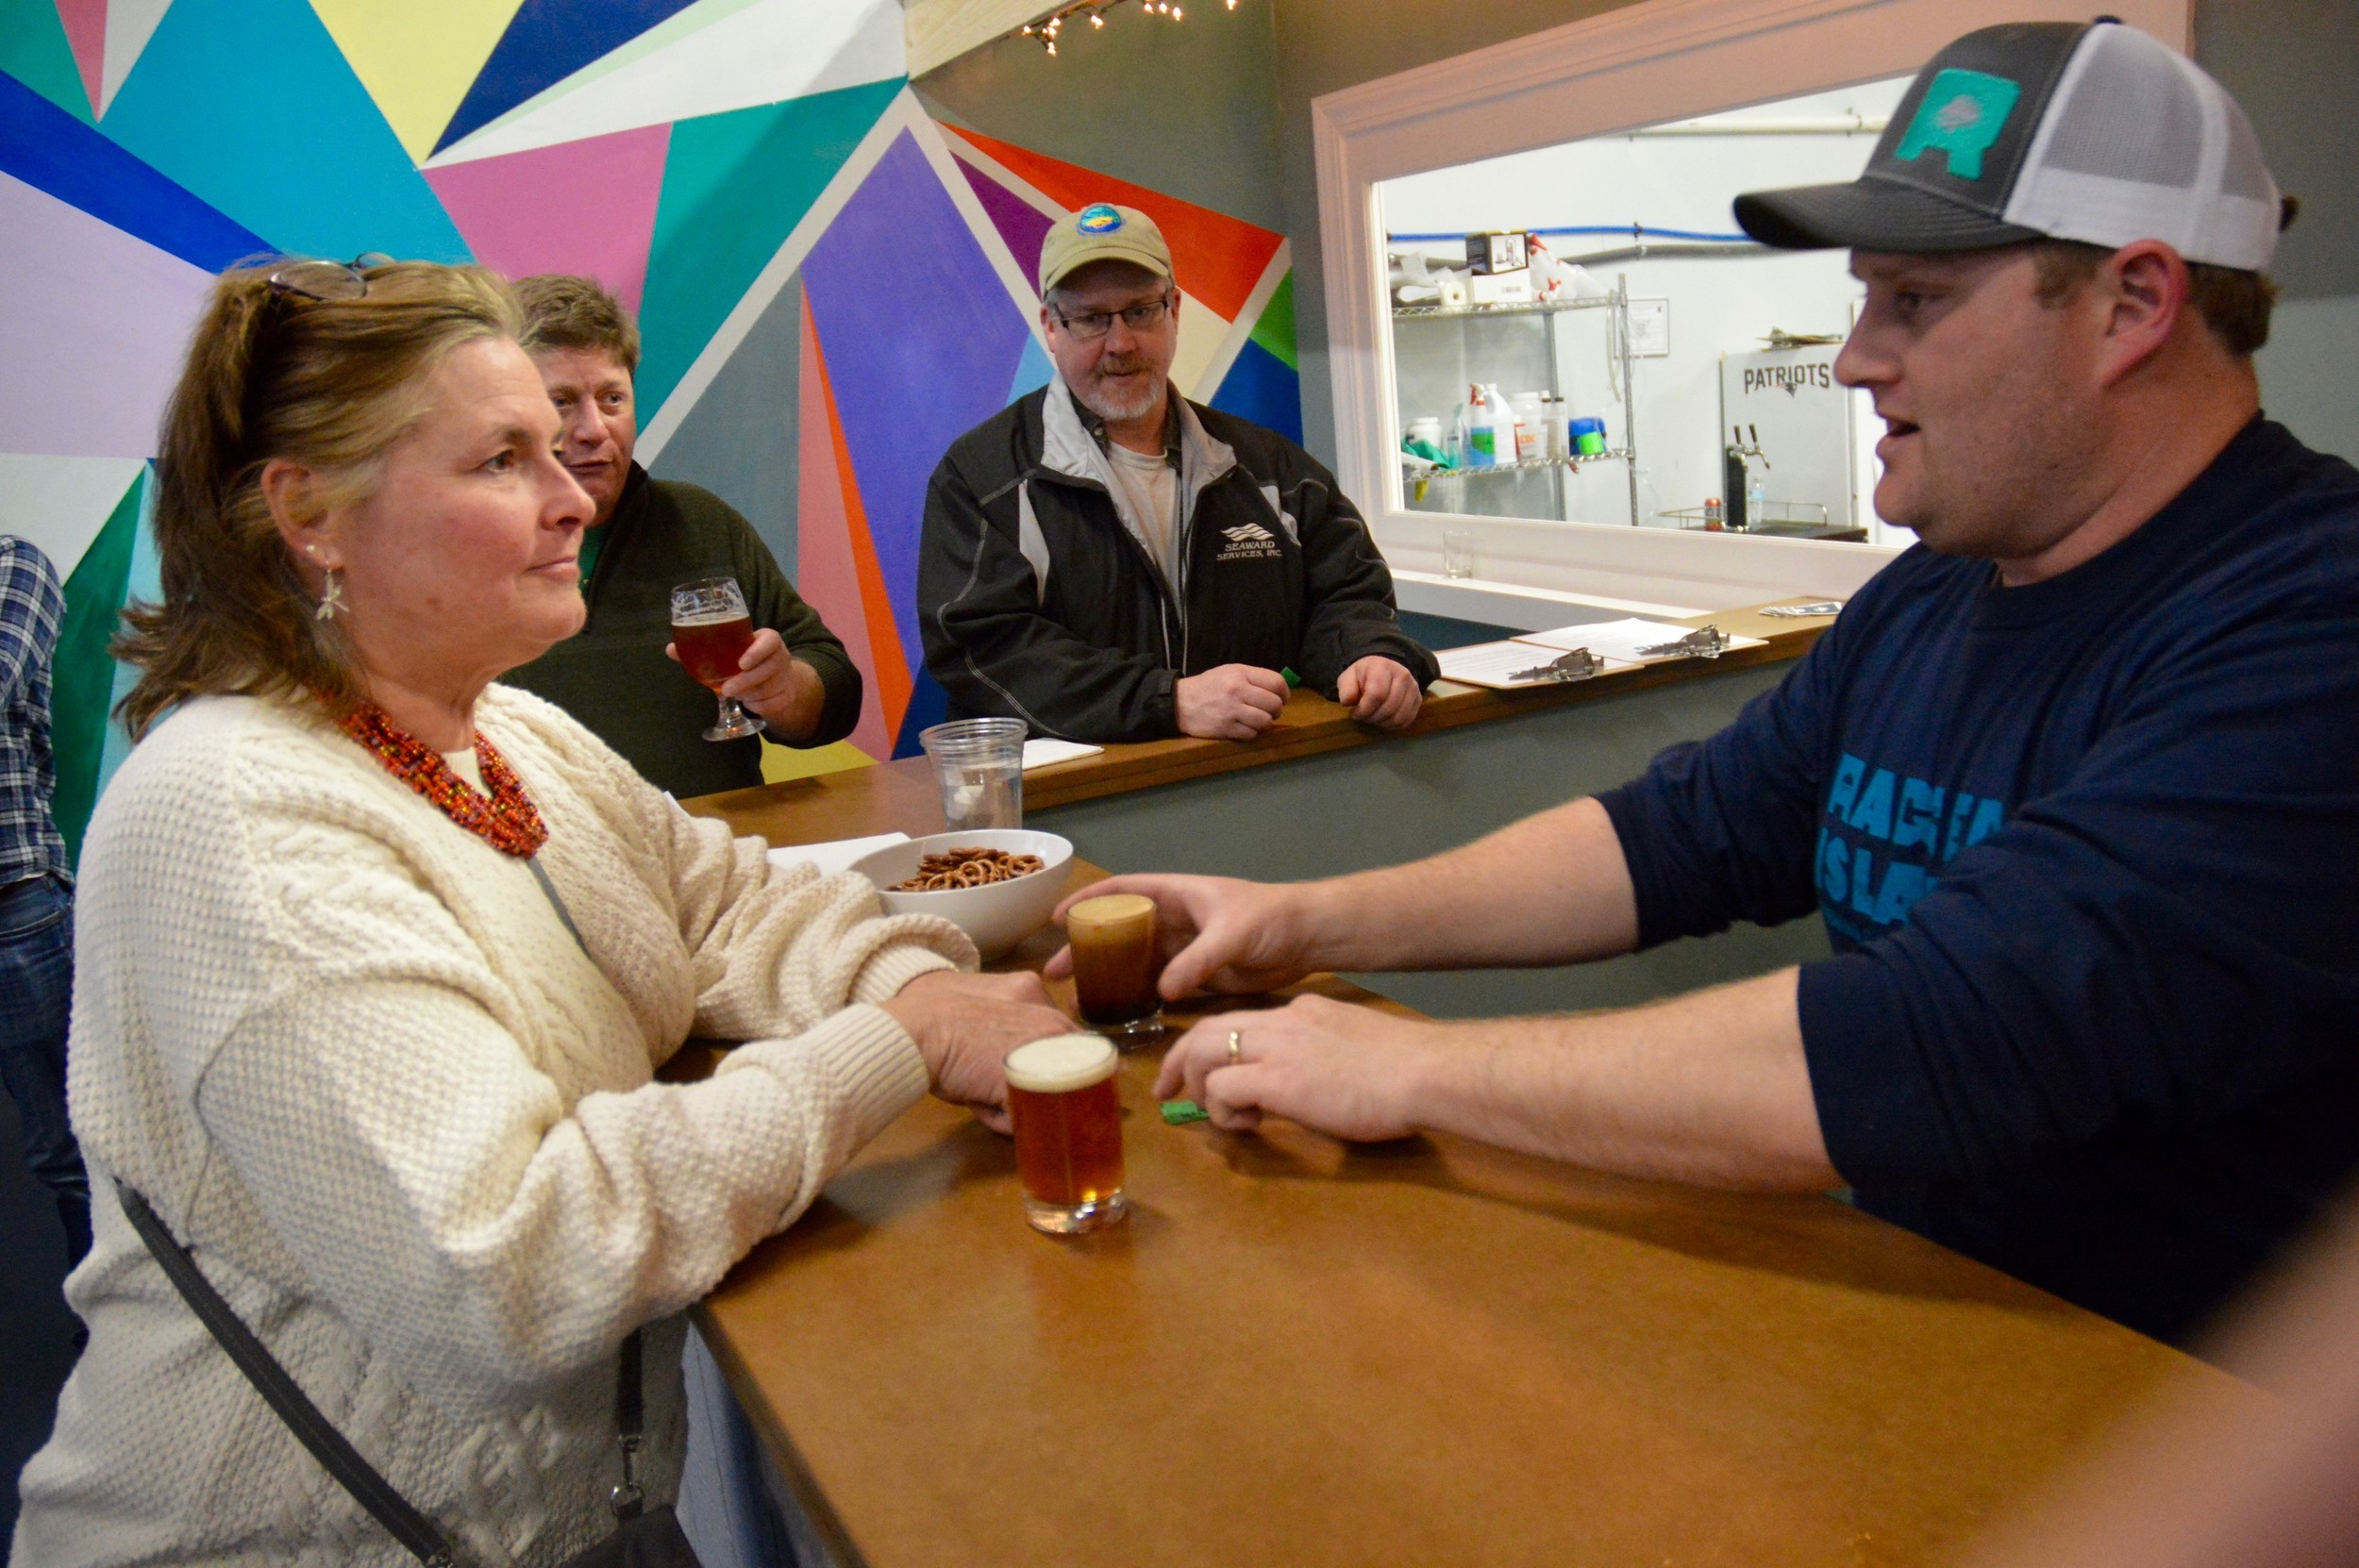 Matt Gray of Ragged Island Brewing explains the different styles of beer to Donna Golden, who ordered a flight of four samplings.